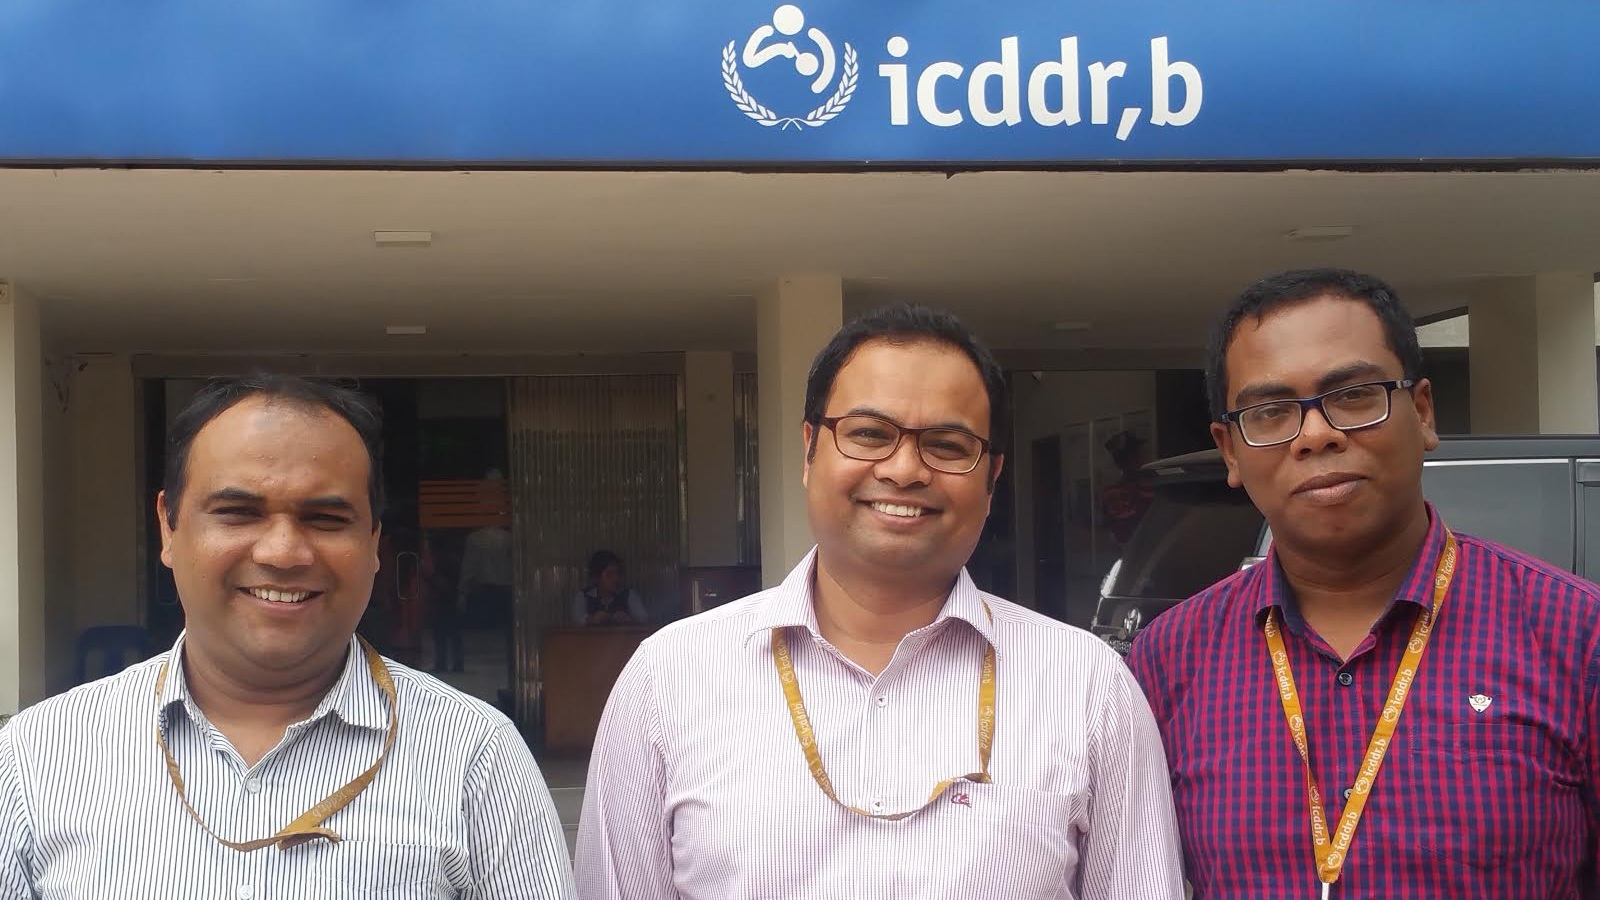 UC Berkeley GHES at the International Centre for Diarrhoeal Disease Research, Bangladesh, Zahirul Islam PhD (2015-2016), Mohammad Aminul Islam PhD MSc (GHES alumnus 2012-2013 and now a GHES mentor), Muhammad Asaduzzaman MBBS, MPH, MPhil (2017-2018).